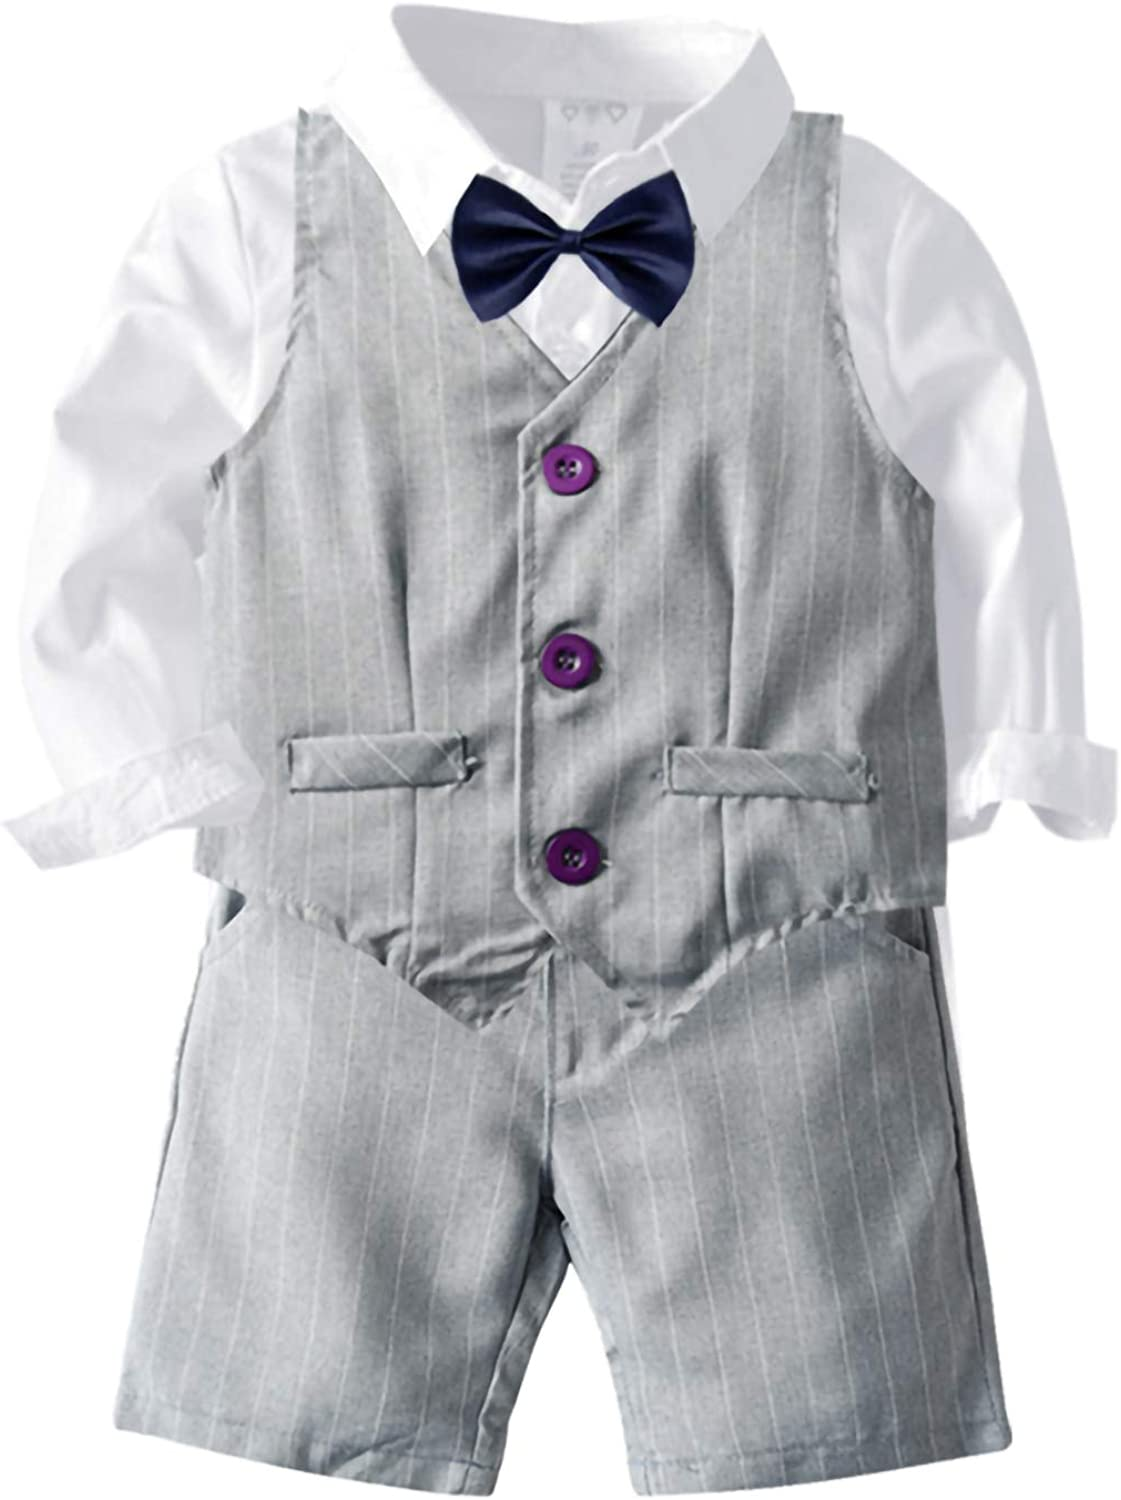 lowest price puseky Child Boy Suit Clothes Long Waistc Tie Bow Sleeve + Shirt Max 76% OFF